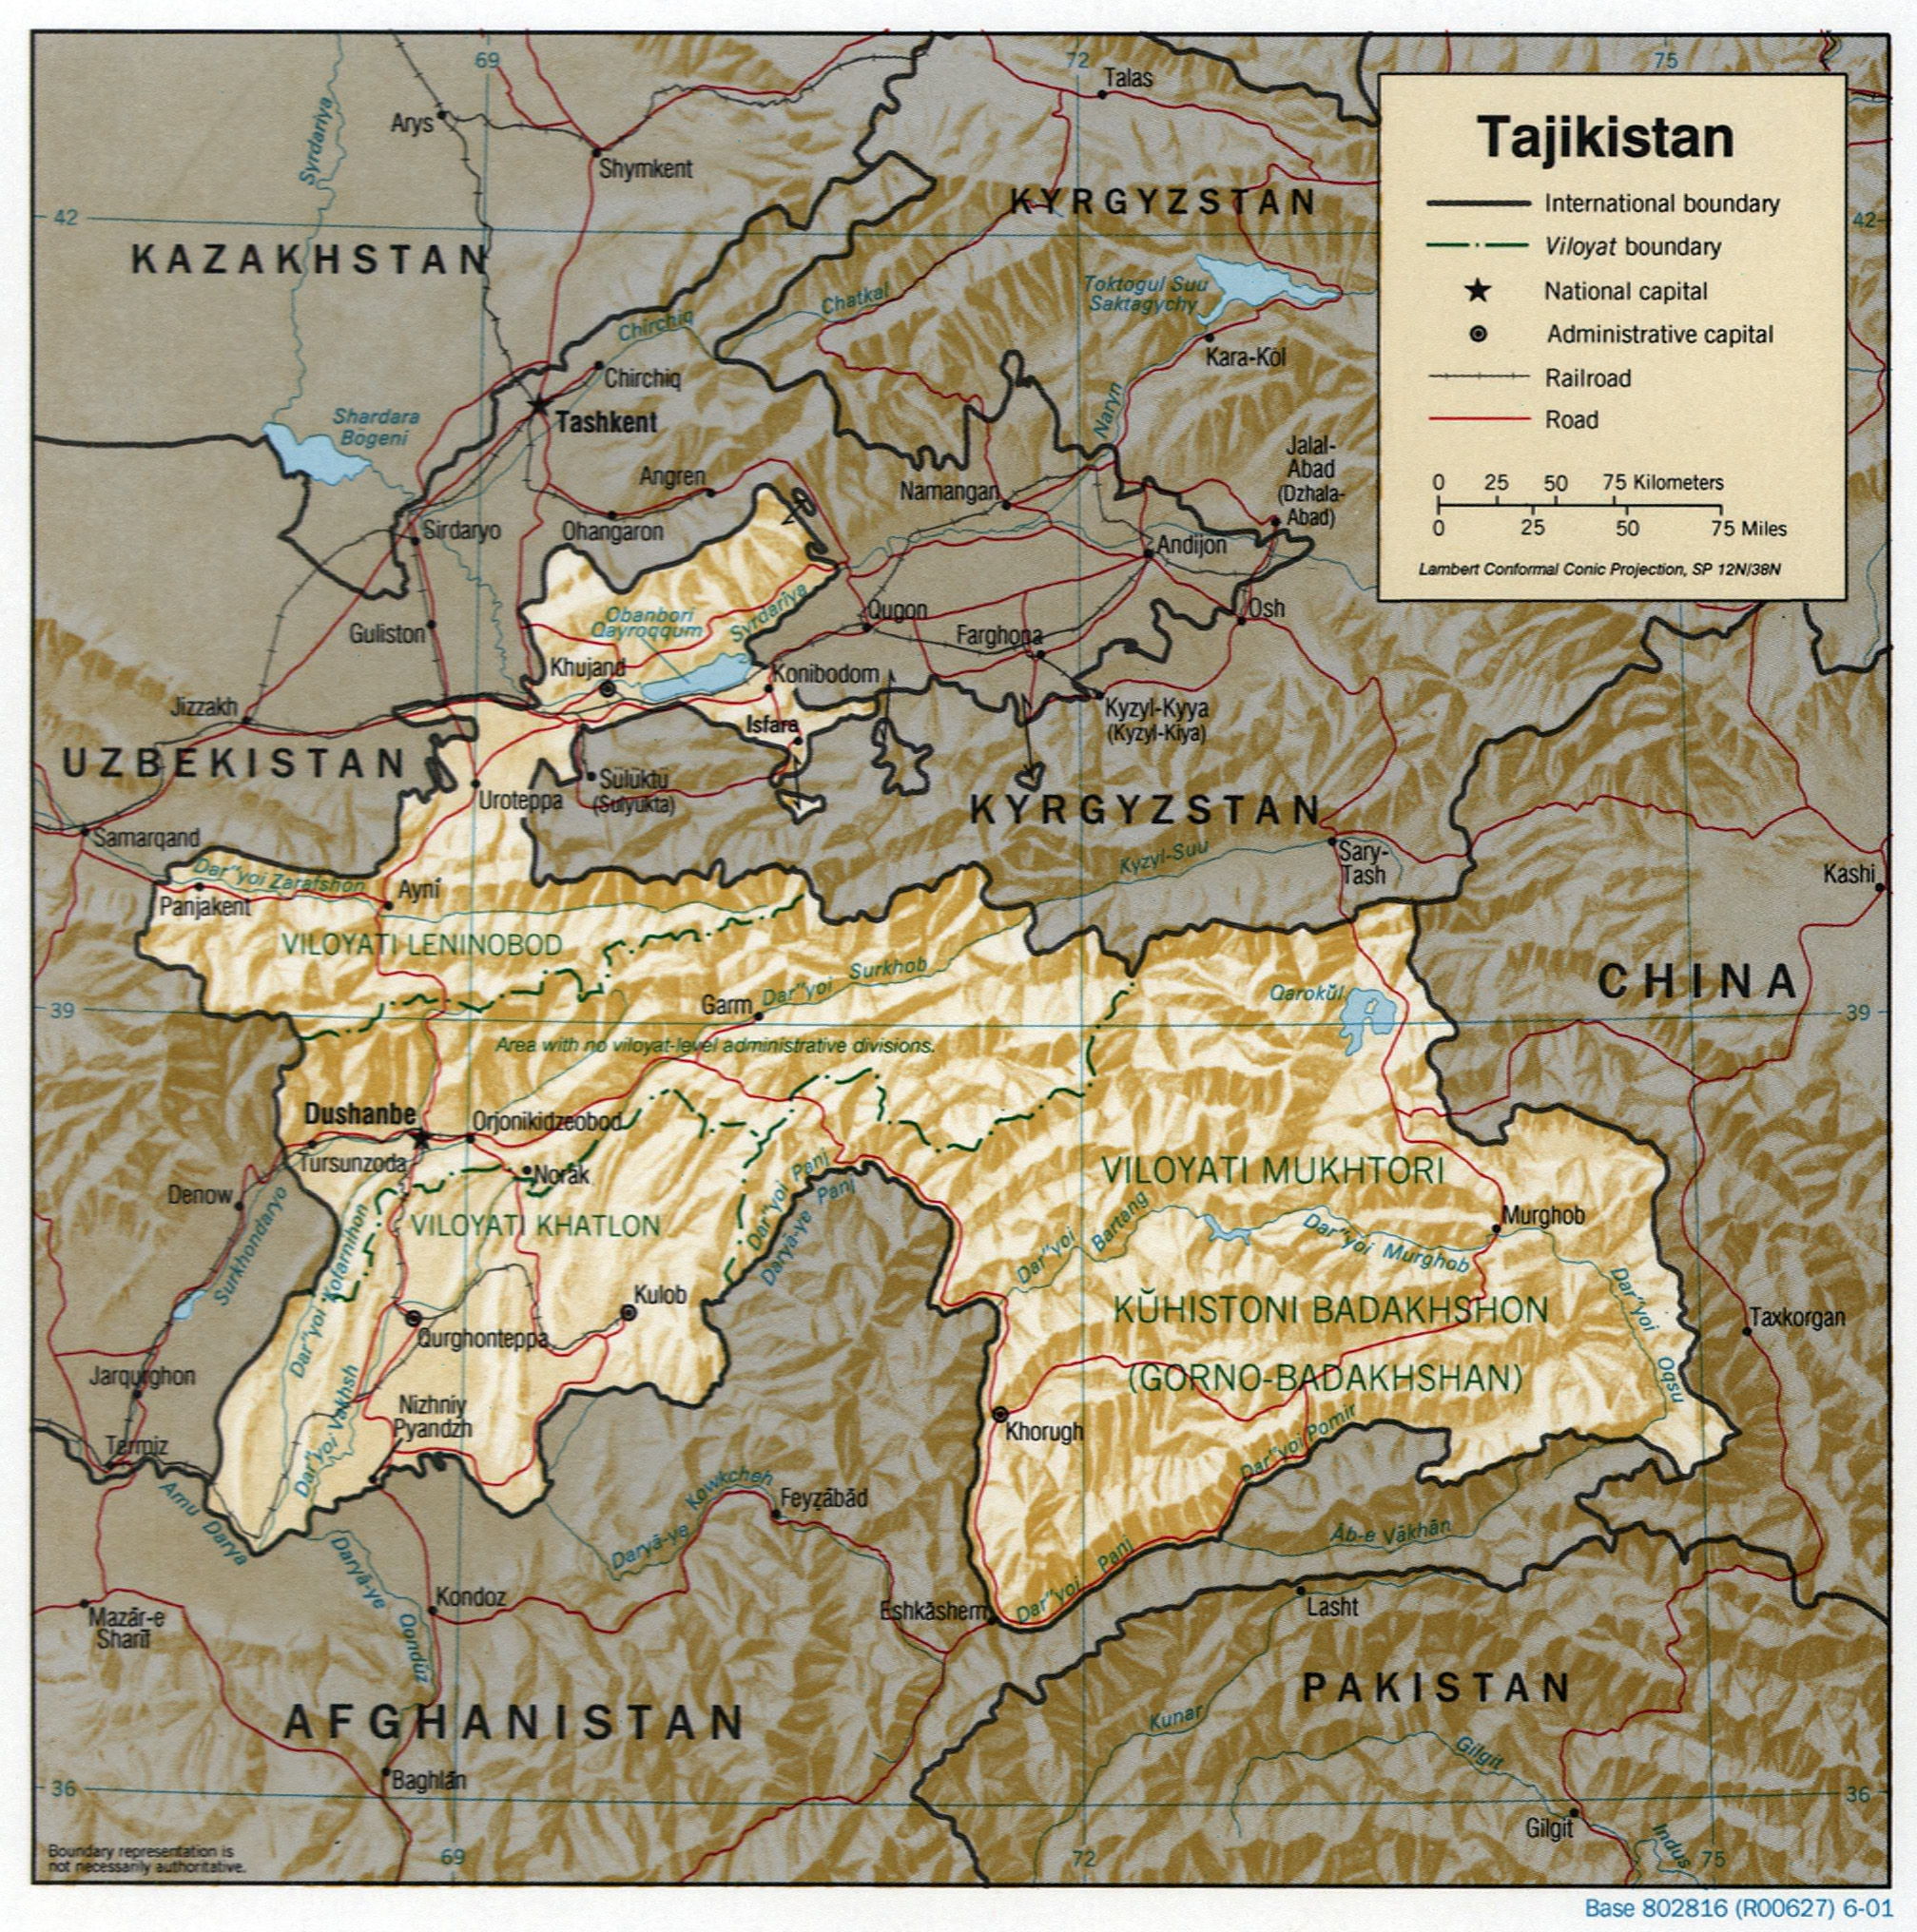 FileTajikistan 2001 CIA mapjpg Wikimedia Commons